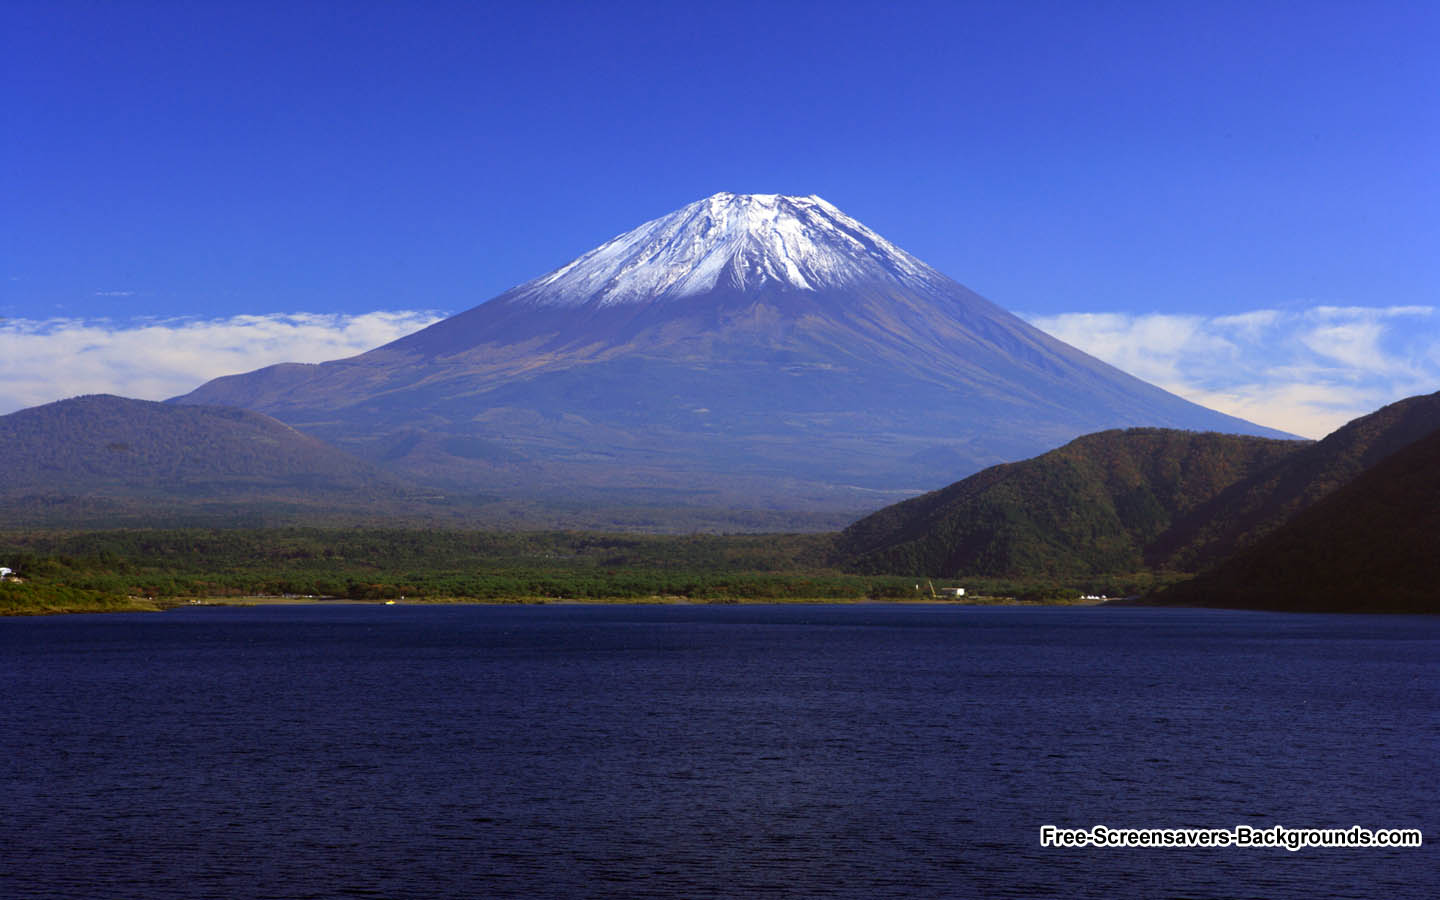 Mount Fuji Japan Wallpaper   Screensavers and Backgrounds 1440x900